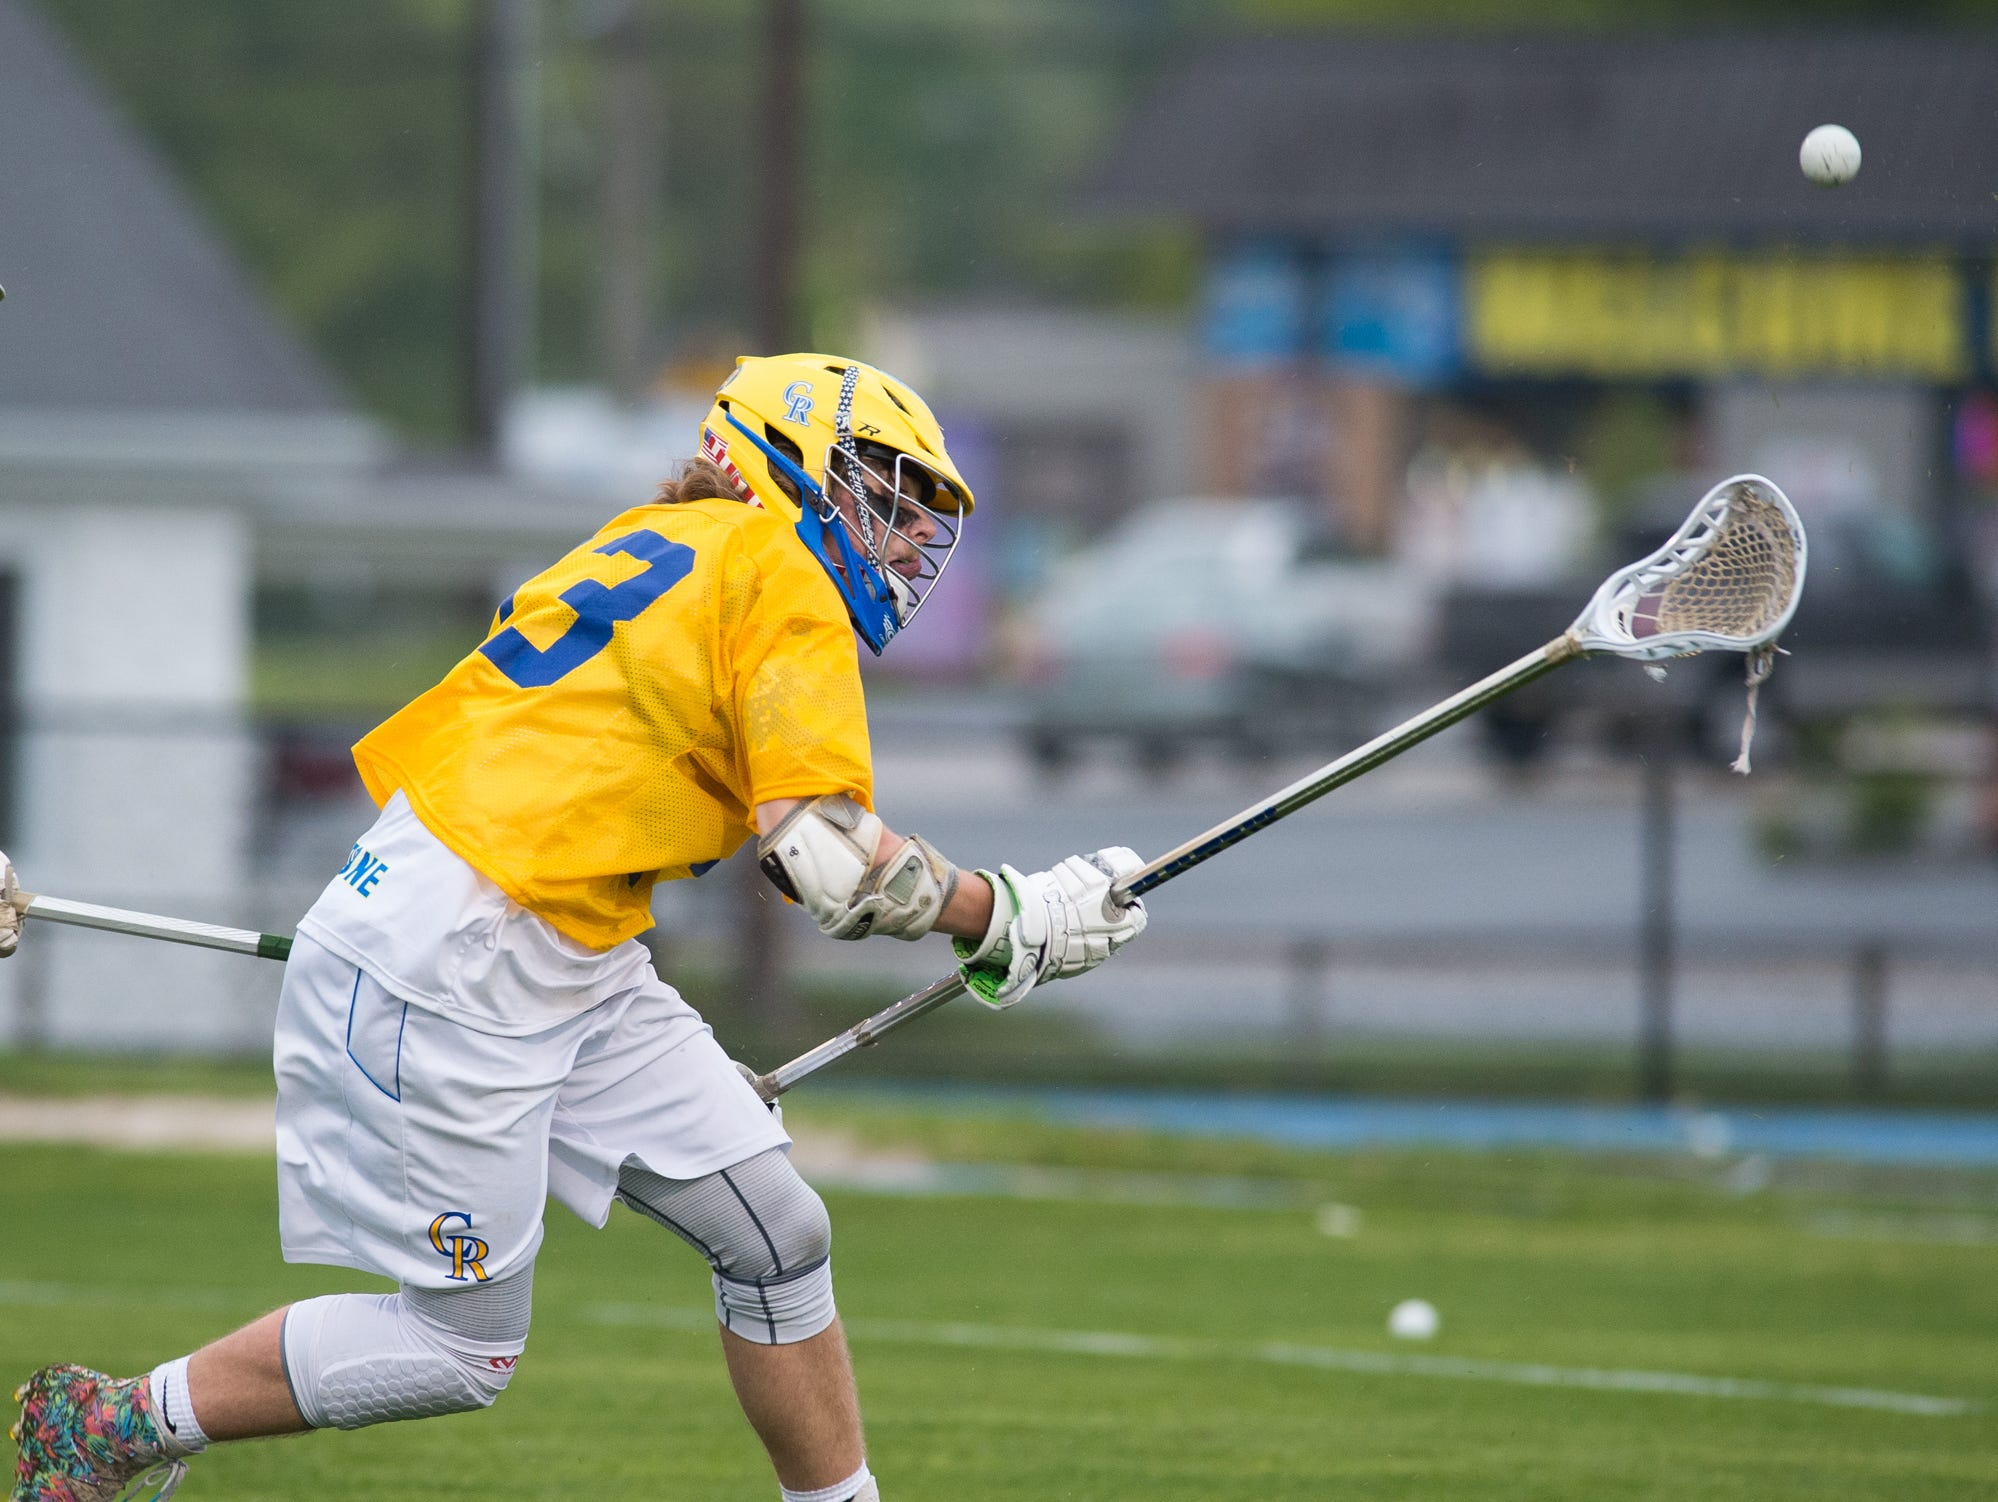 Caesar Rodney's Jacob Mollohan (33) runs after the ball in their home game against Tower Hill.